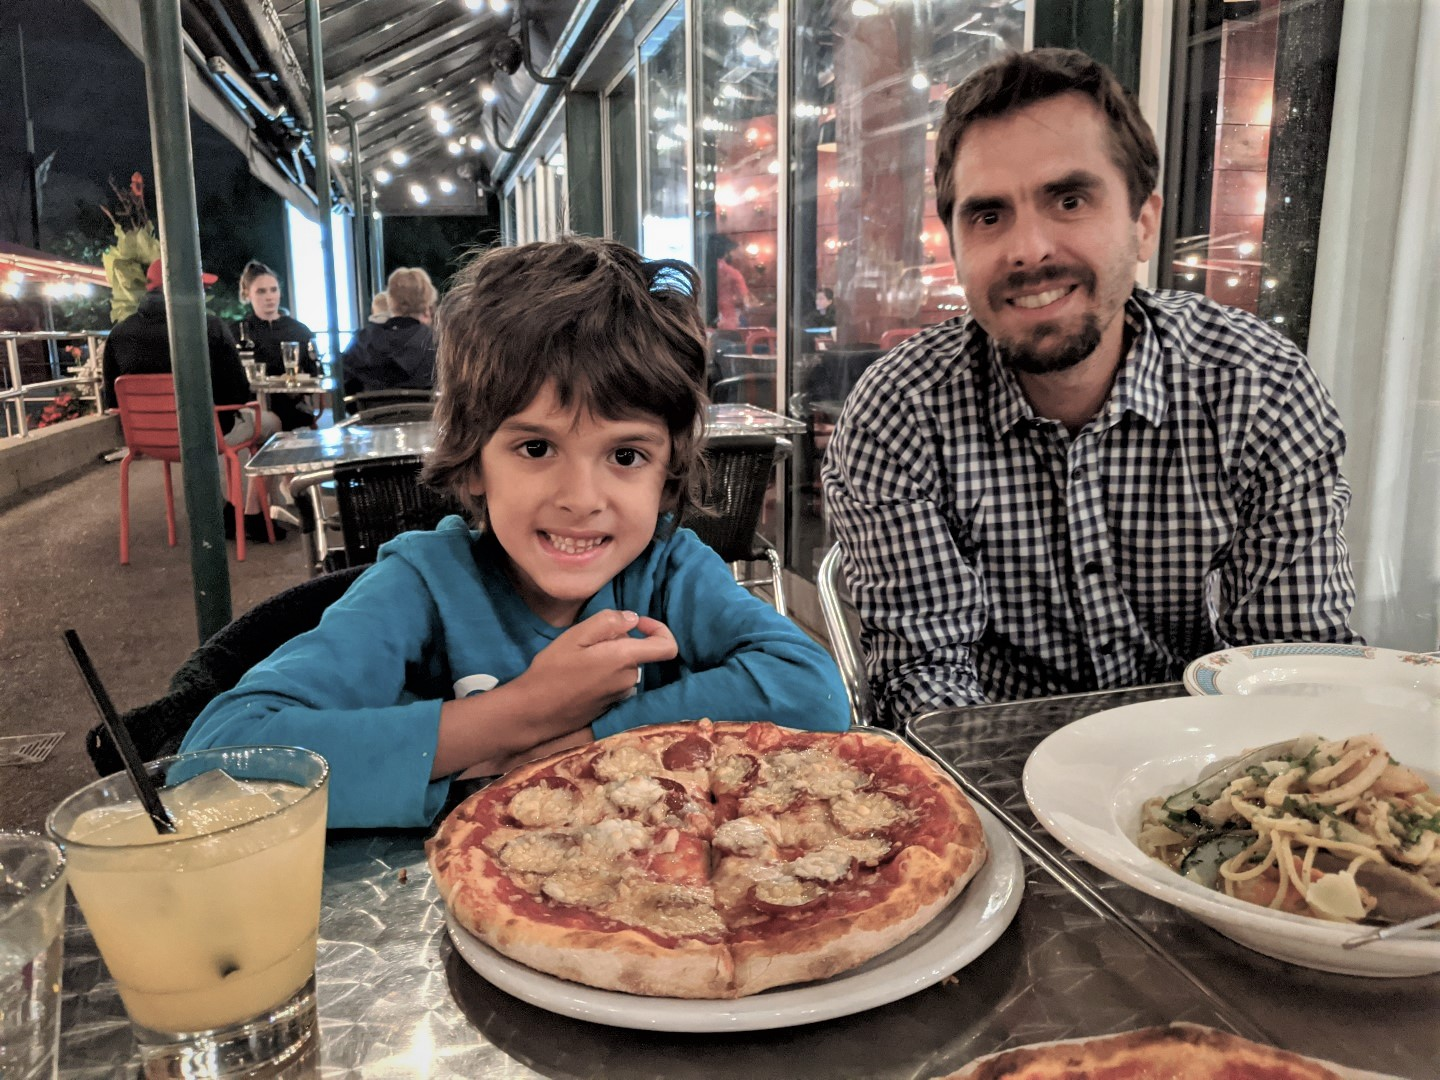 son and father in front of pizza